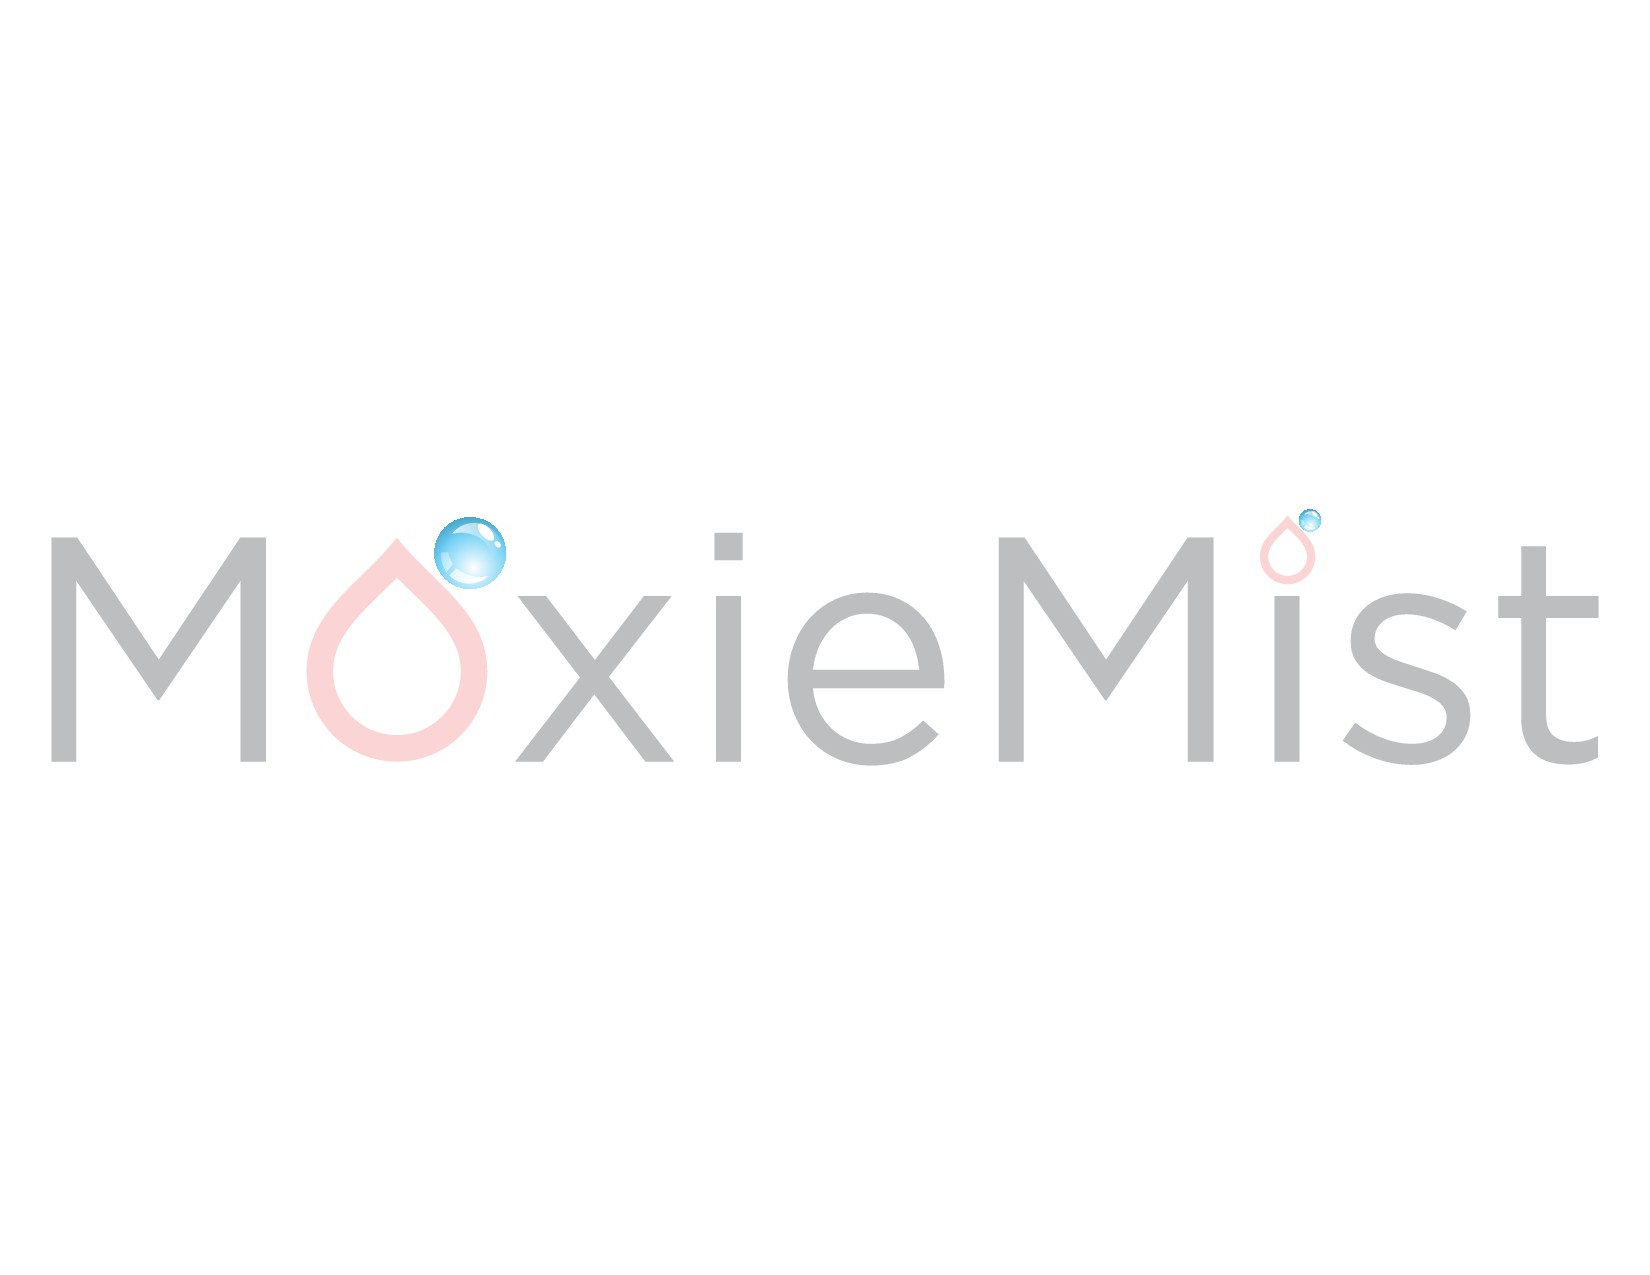 Create a beautifully determined logo for MoxieMist